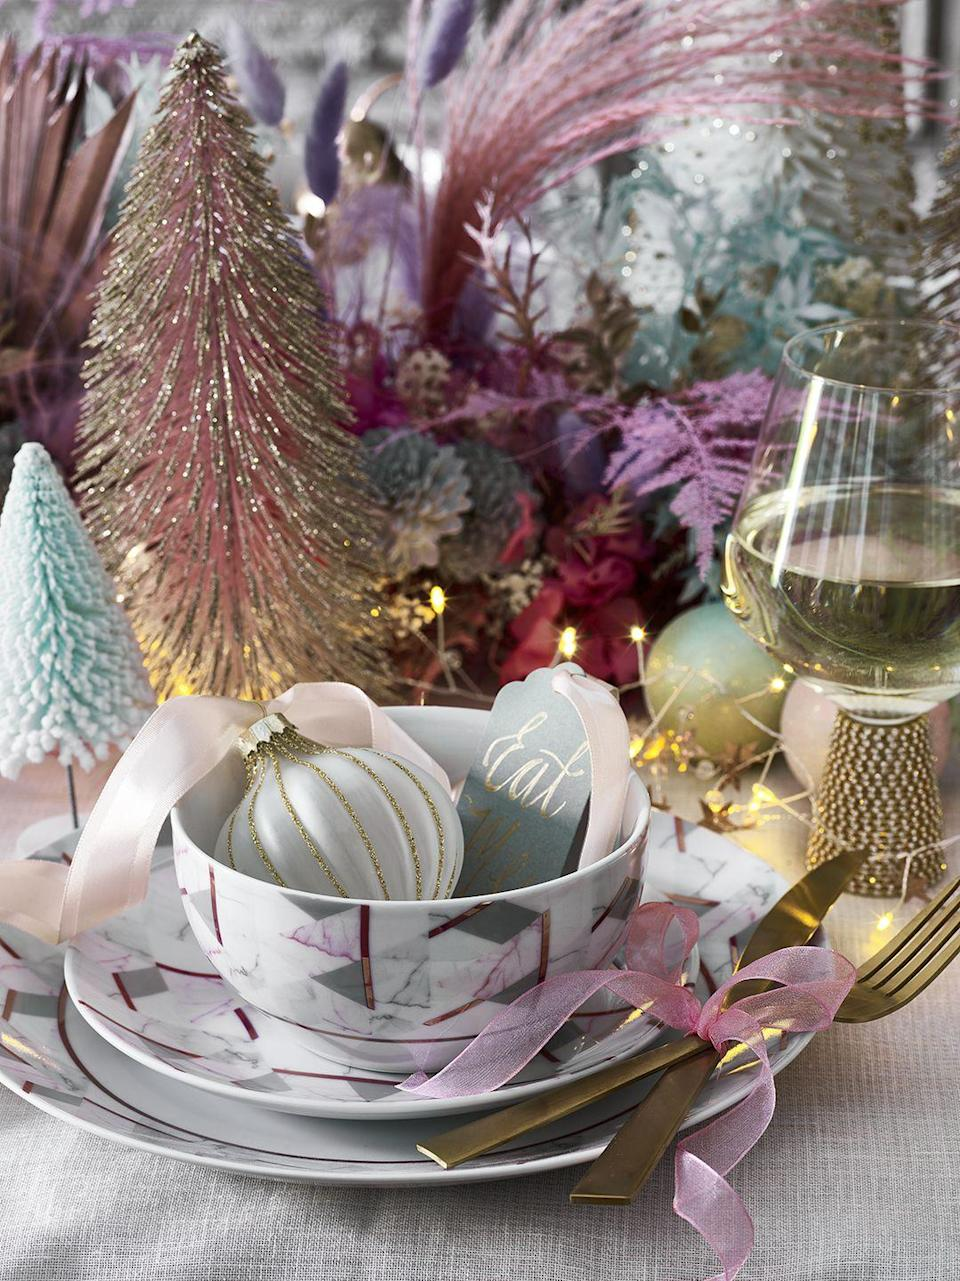 <p>Dazzle your dinner guests with gorgeous marble plates, miniature frosted trees, and fanciful baubles decorated in white and gold from George Home's Christmas range. </p>